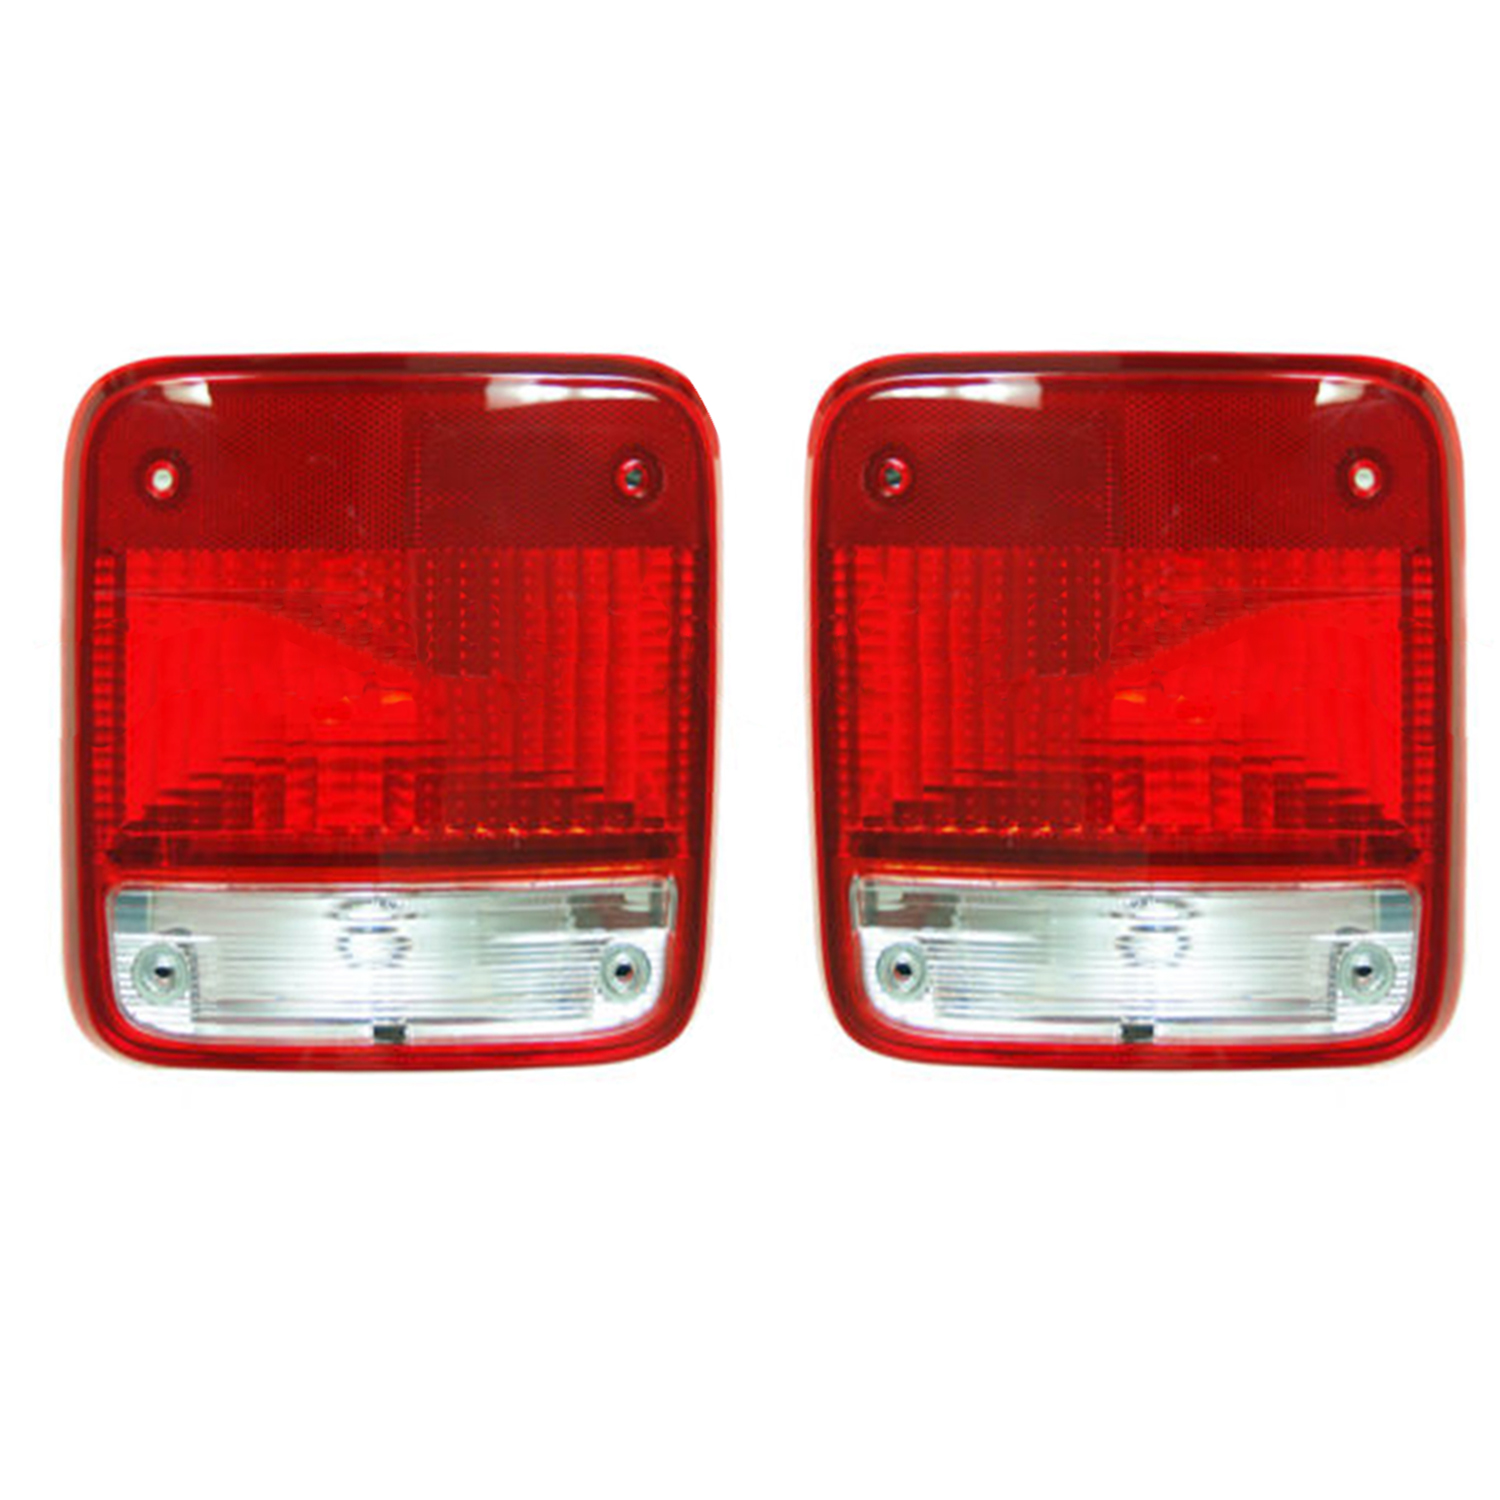 new pair of tail lights fits chevrolet g10 g20 1985 1995. Black Bedroom Furniture Sets. Home Design Ideas